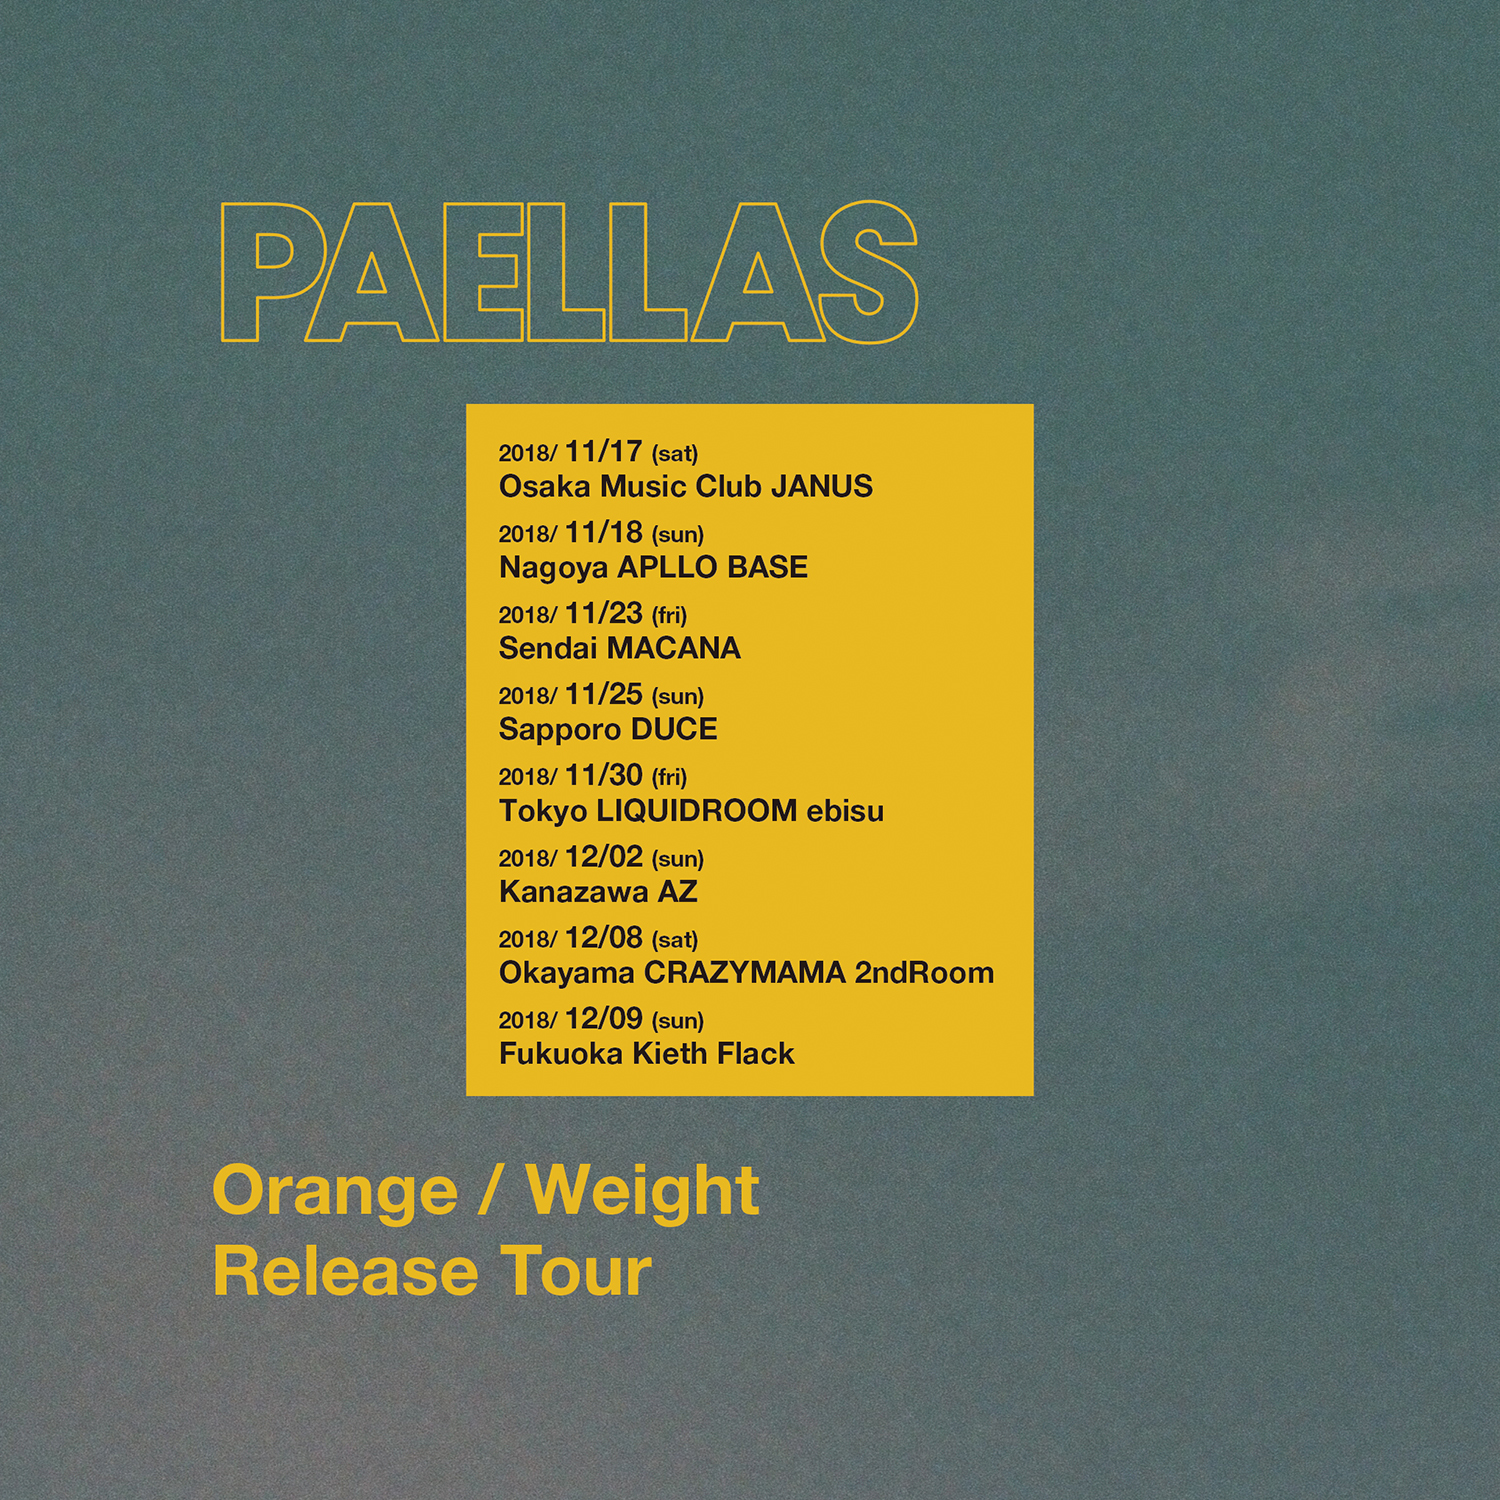 PAELLAS Orange / Weight Release Tour